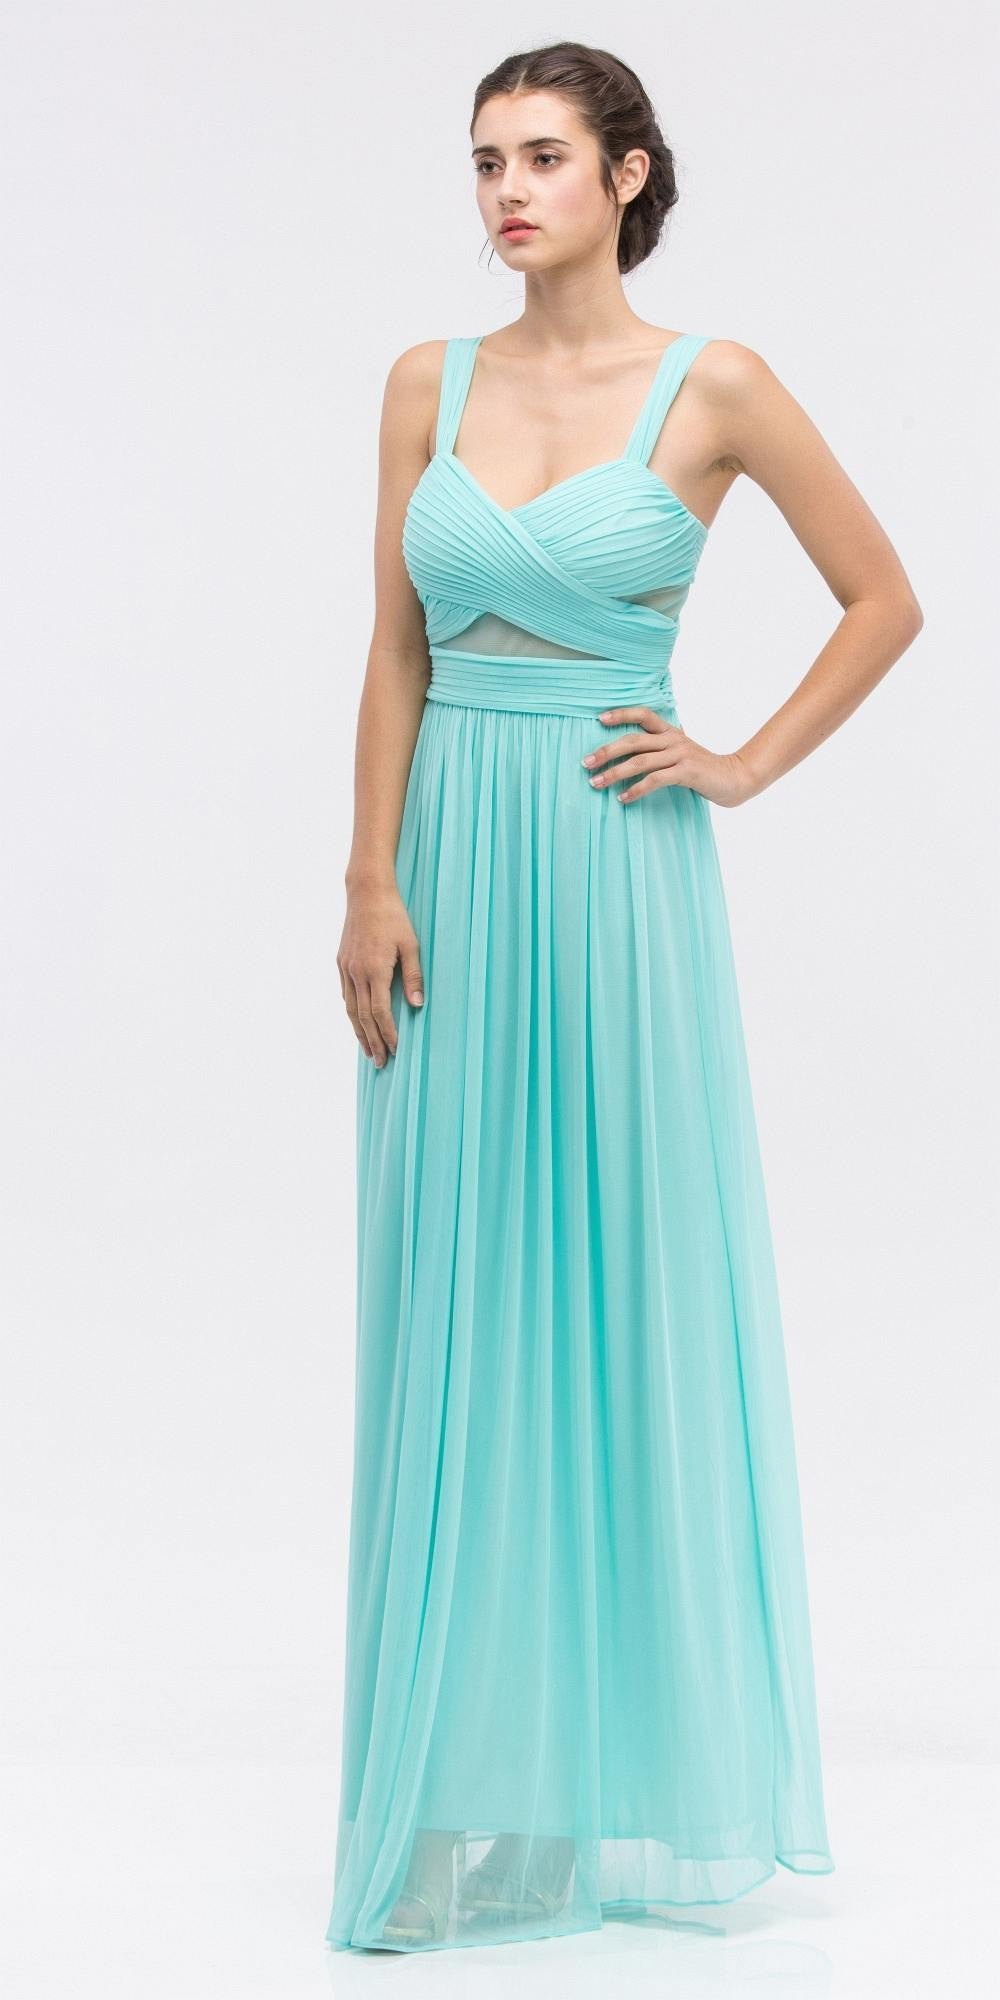 Mint Prom Gown Ruched Bodice Sweetheart Neckline Cut-Out Midriff